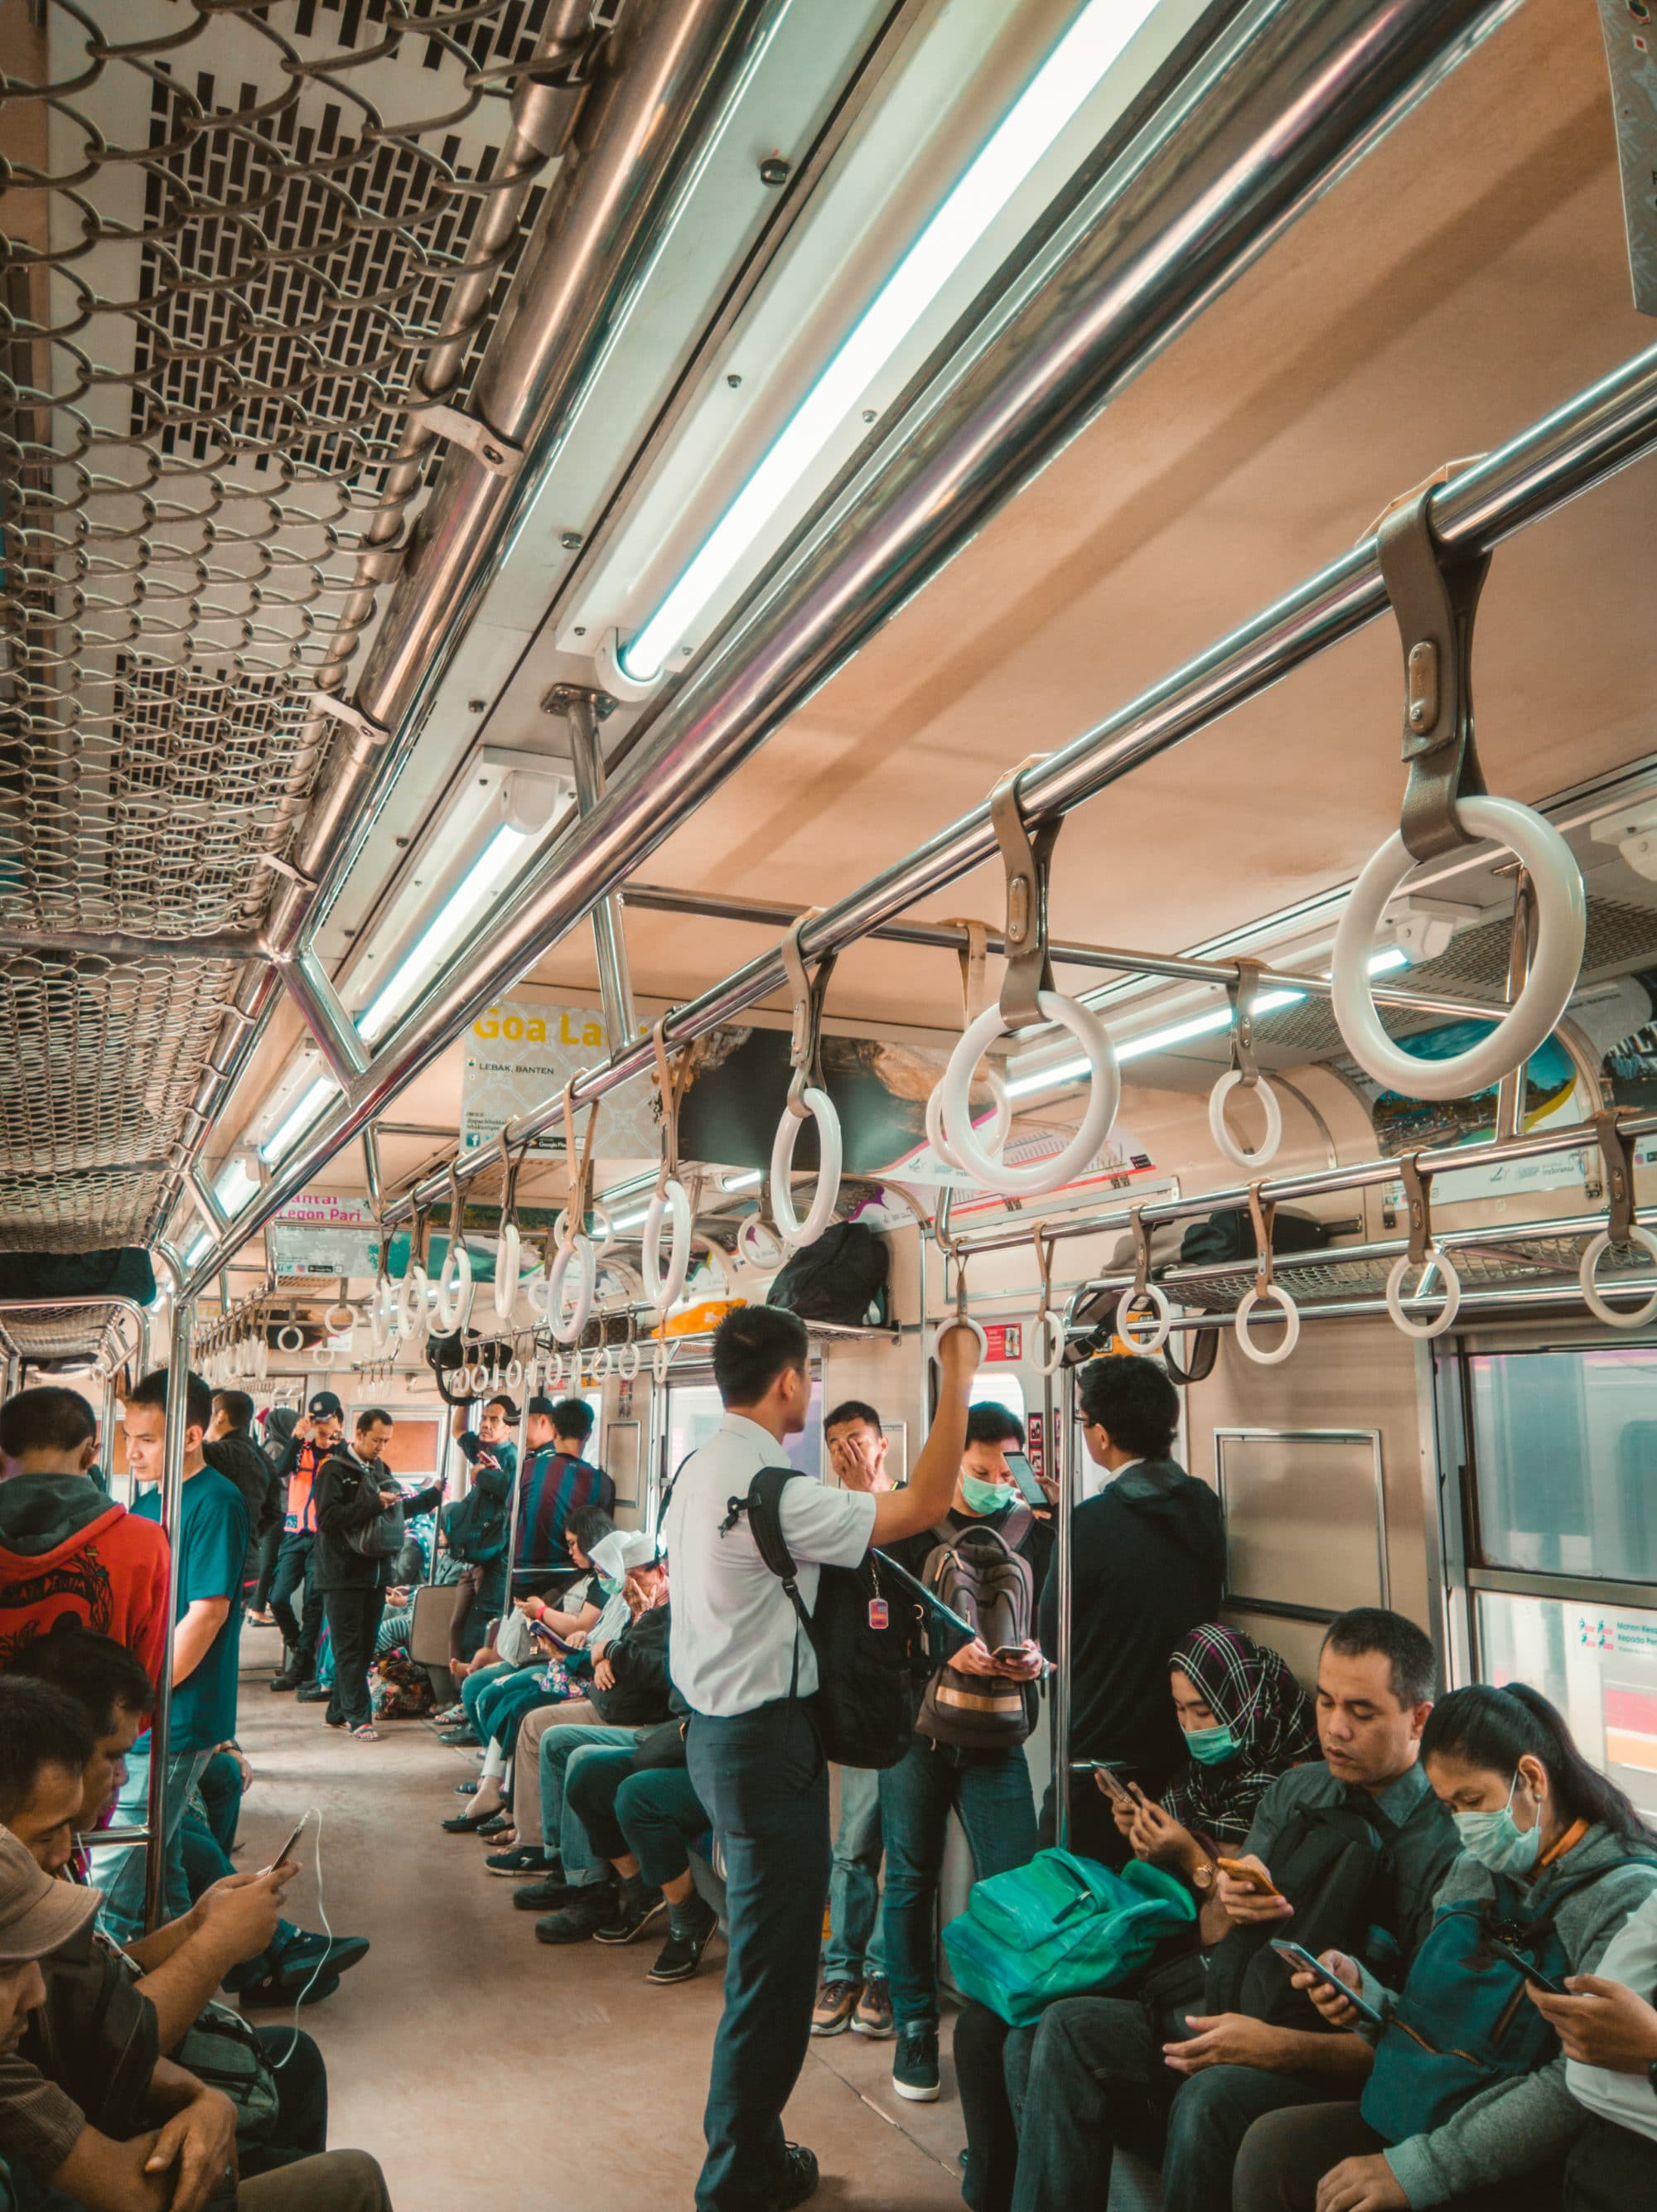 Interior of a relatively full Indonesian subway or train car.